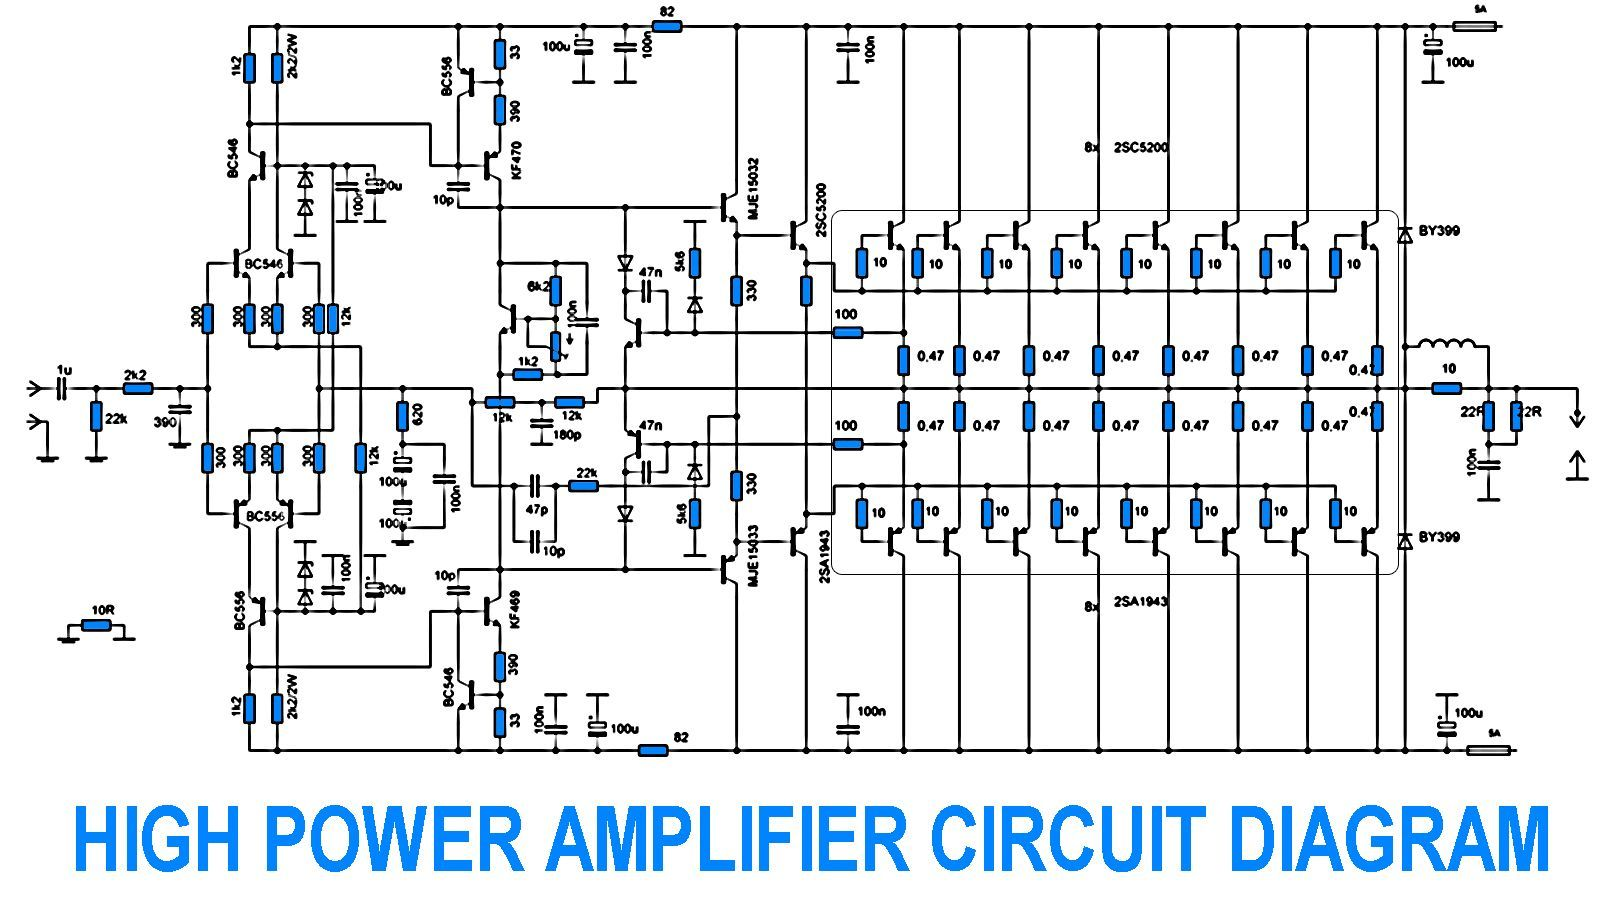 High Power Amplifier Circuit Diagram - Circuit Schematic Electronics Power  Amplifier With - High Power Amplifier Circuit Diagram